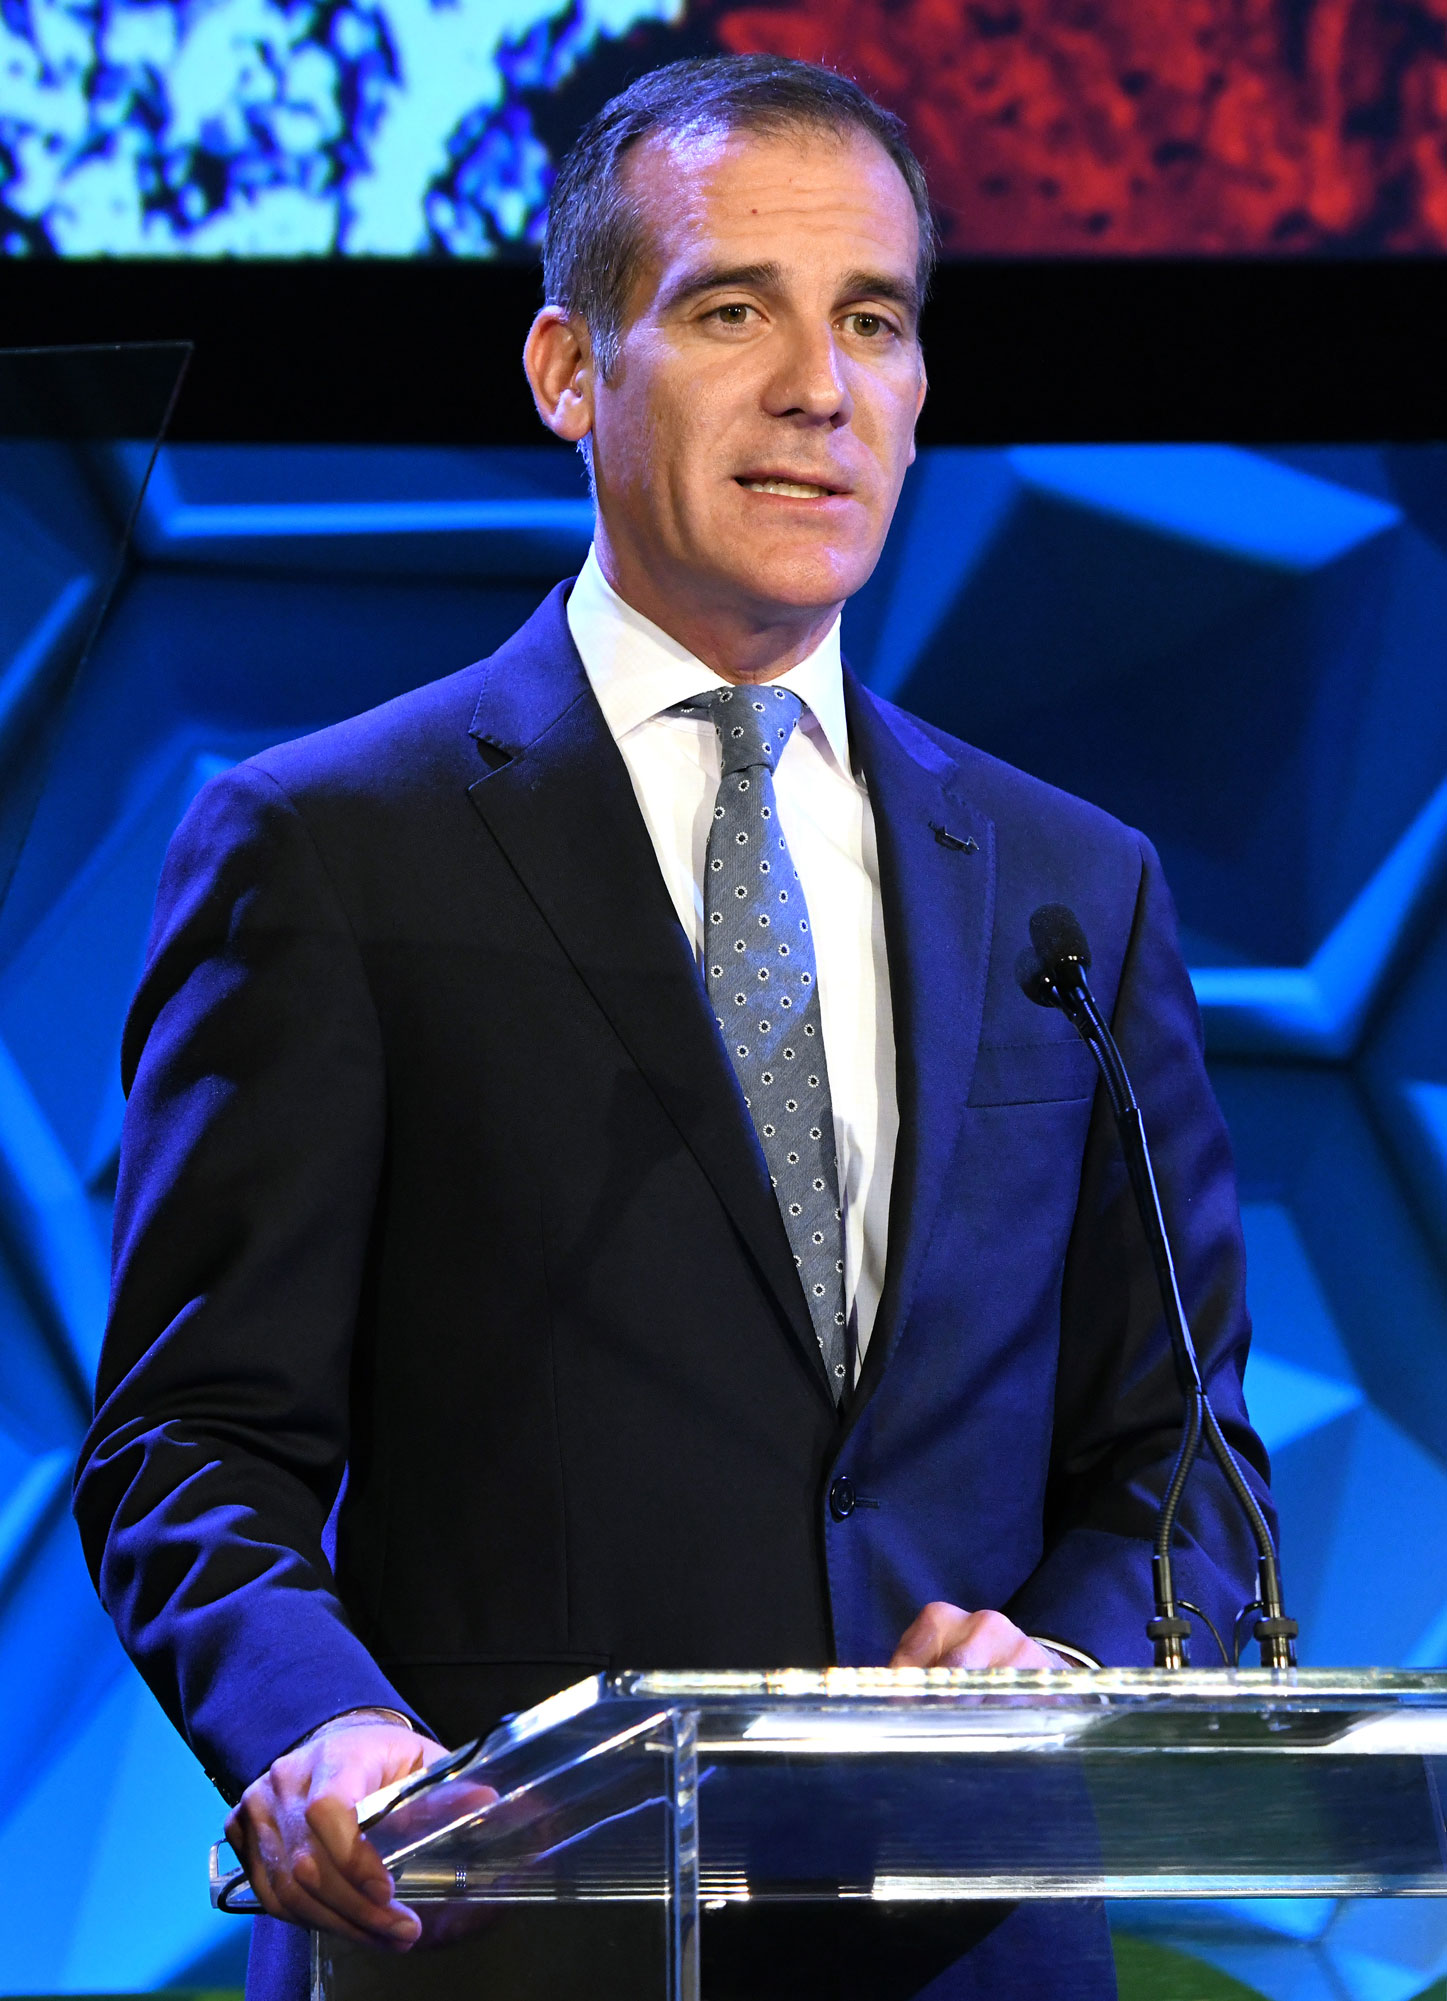 Los Angeles Mayor Eric Garcetti Speaks at IMPACT